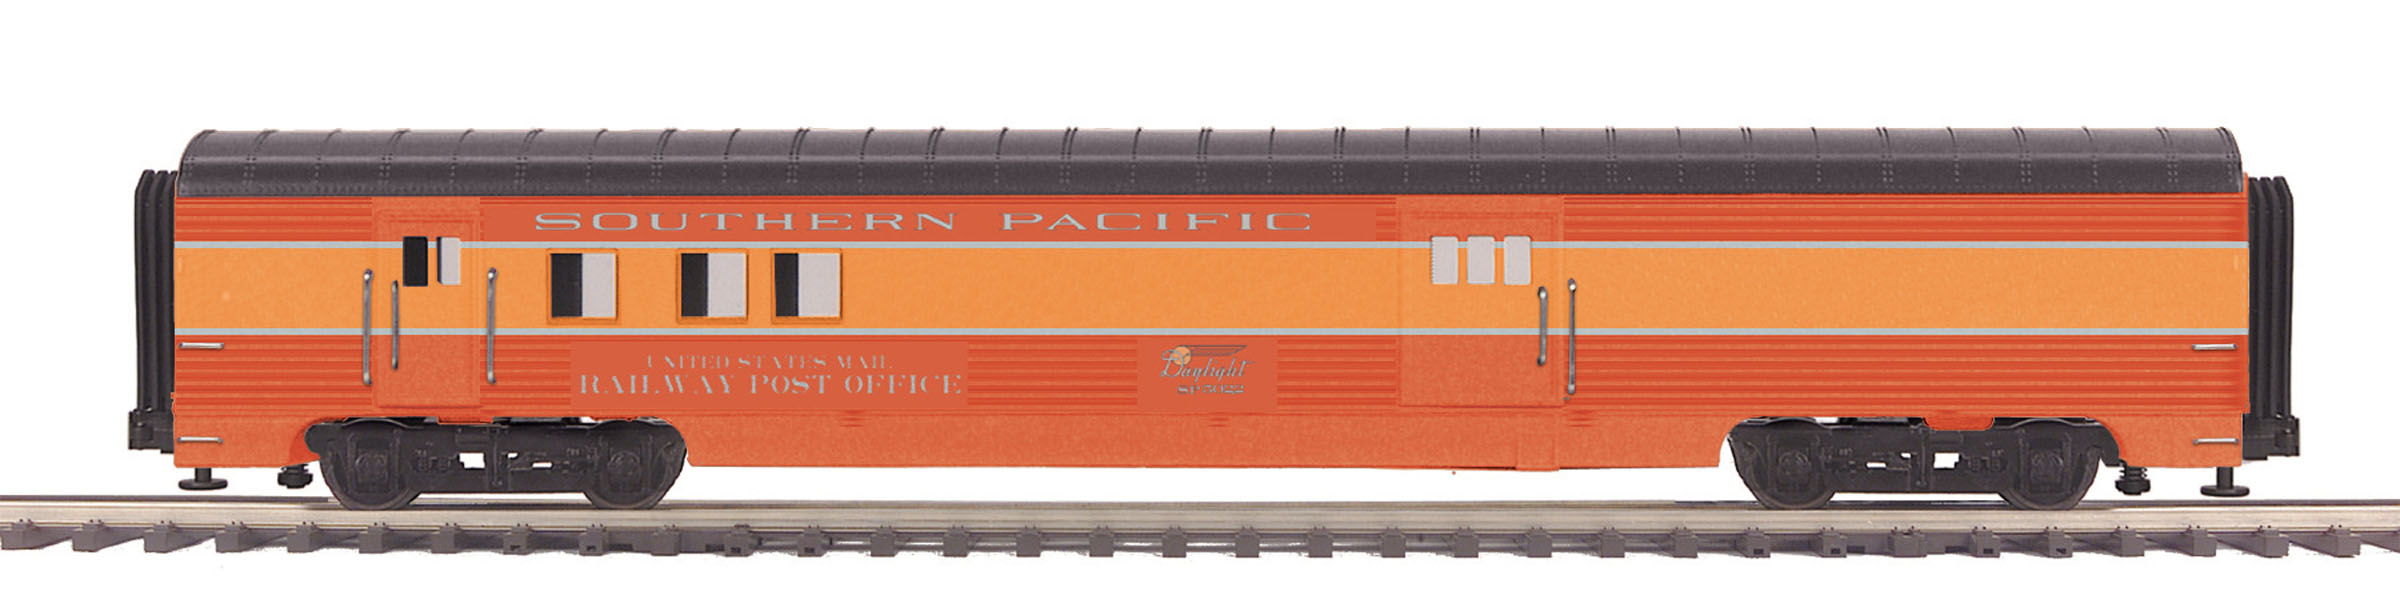 mth 20 68239 o southern pacific daylight 70 39 abs rpo ribbed passenger car ebay. Black Bedroom Furniture Sets. Home Design Ideas